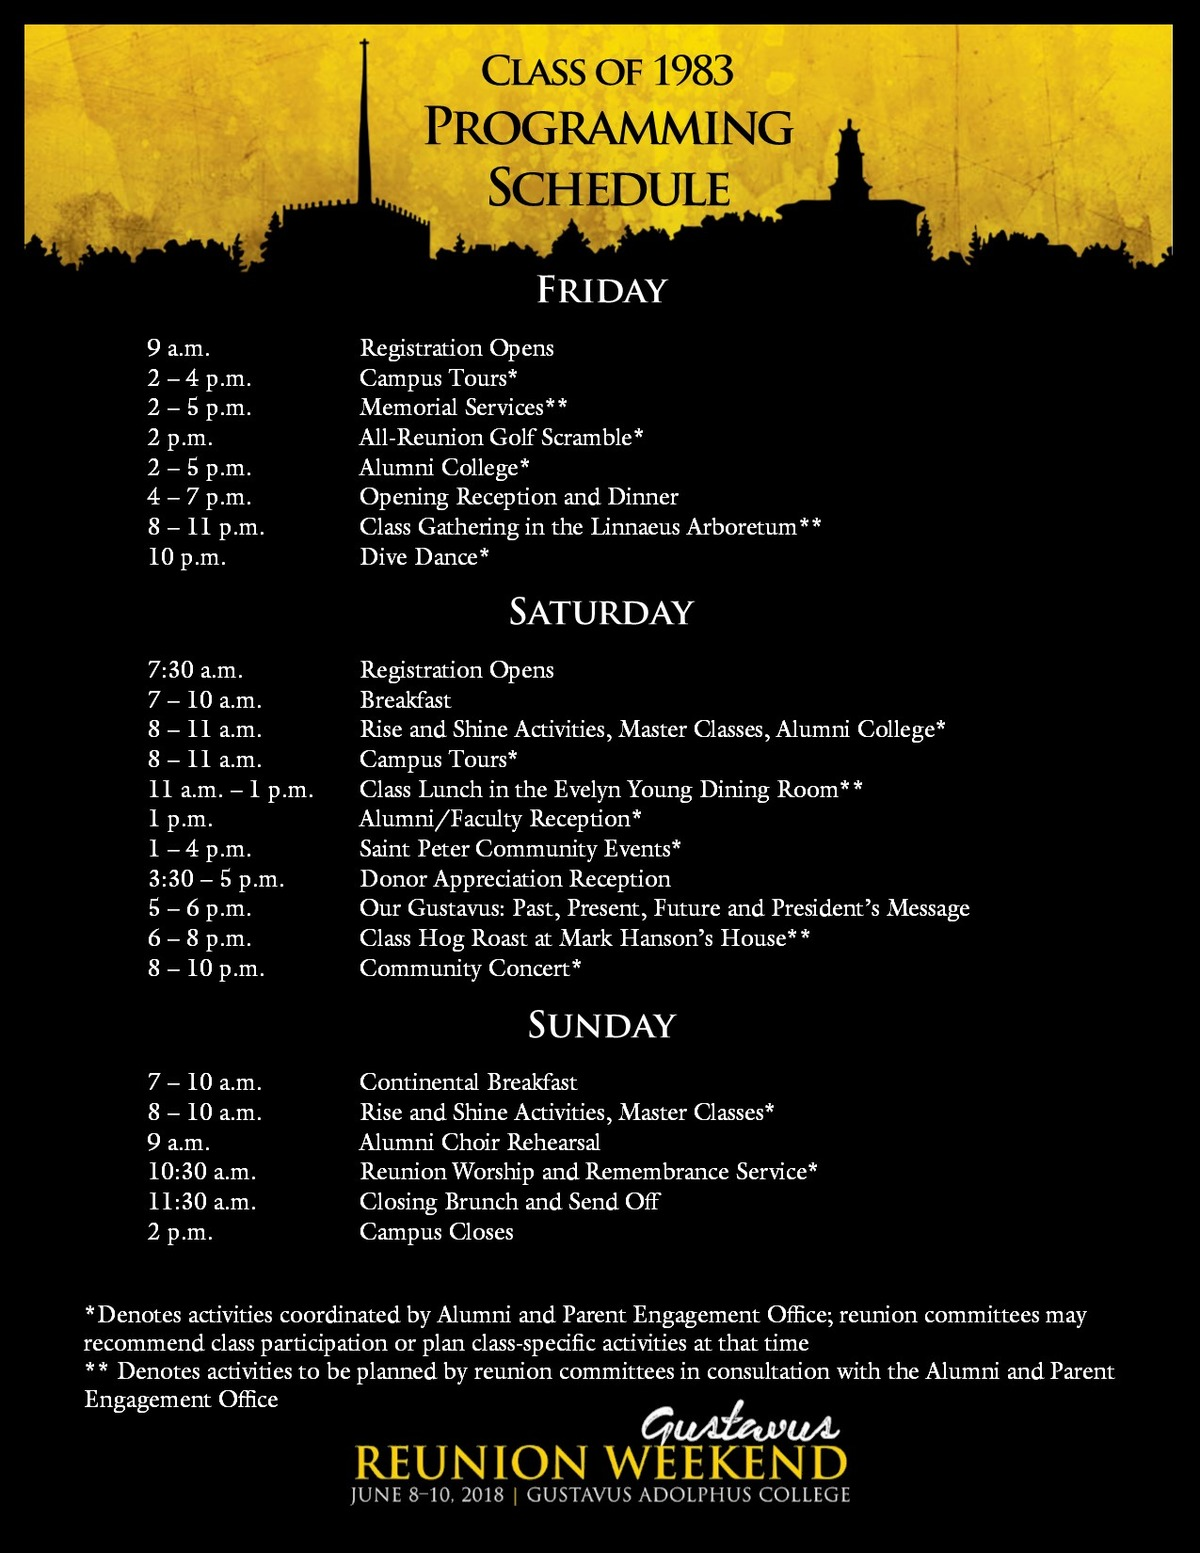 Class specific Reunion Weekend schedule